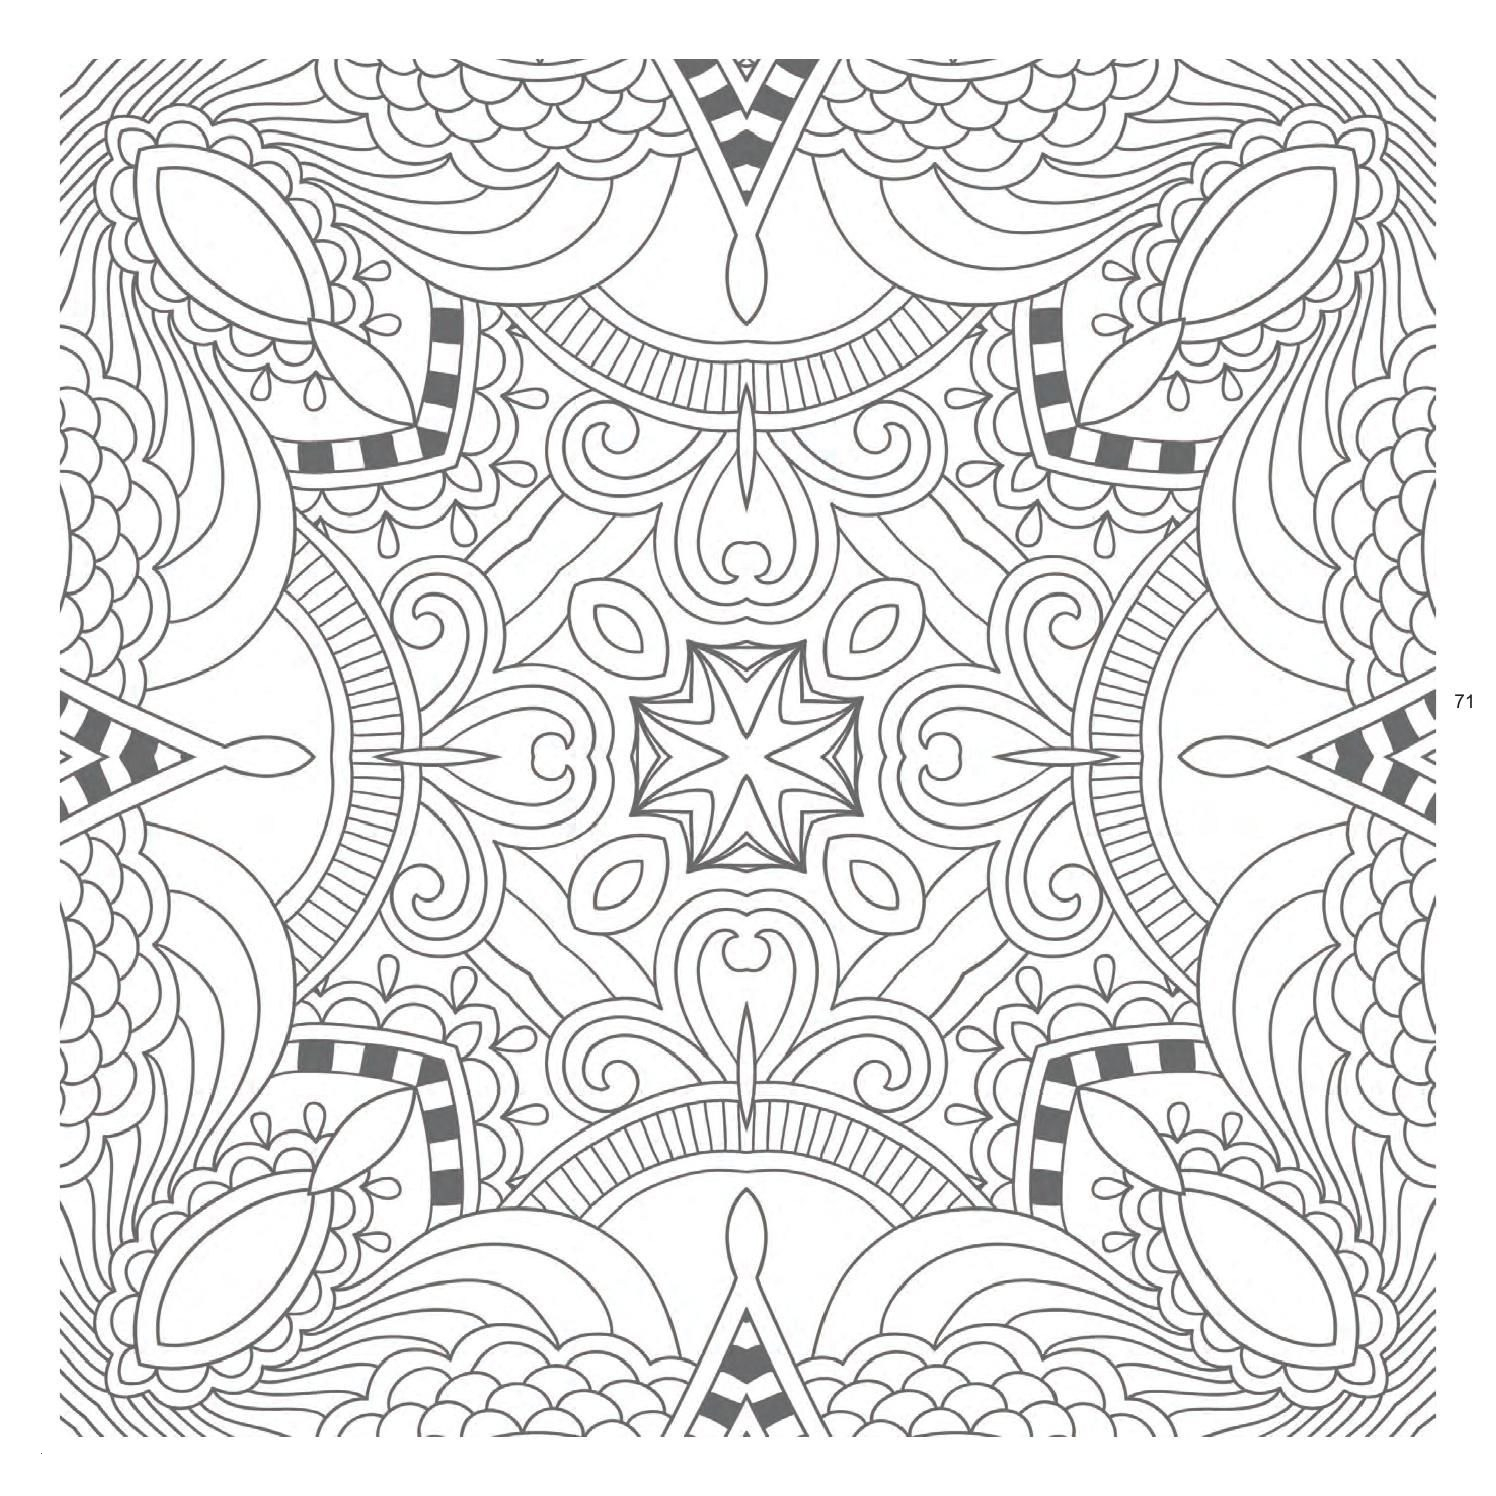 color therapy coloring pages Collection-Therapy Coloring Pages Color therapy Coloring Pages 21csb 11-g